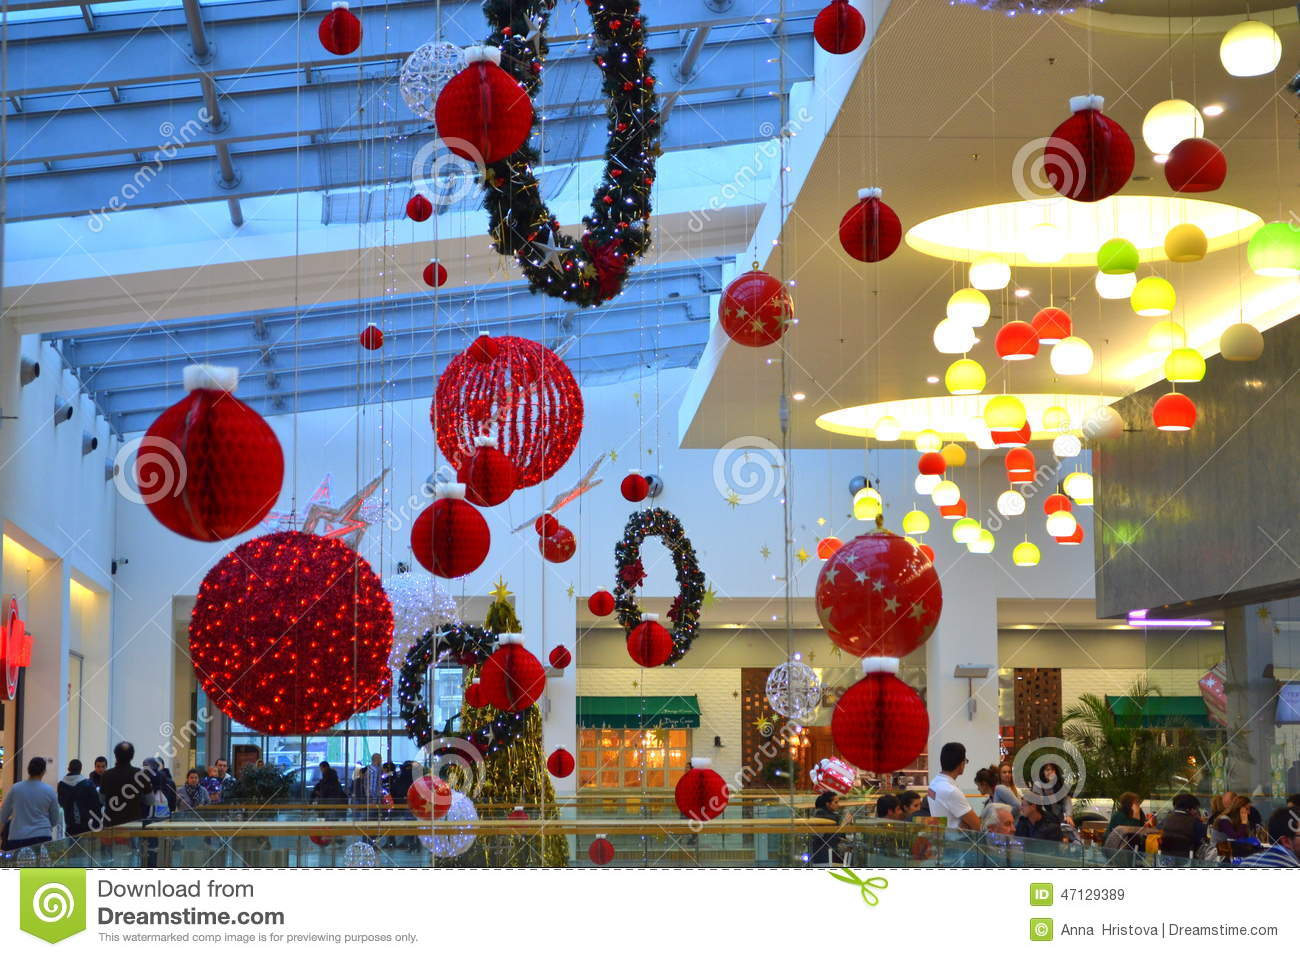 a shopping mall with christmas decorations filled with customers on black fridaypicture taken on november 21st2014varna citybulgaria